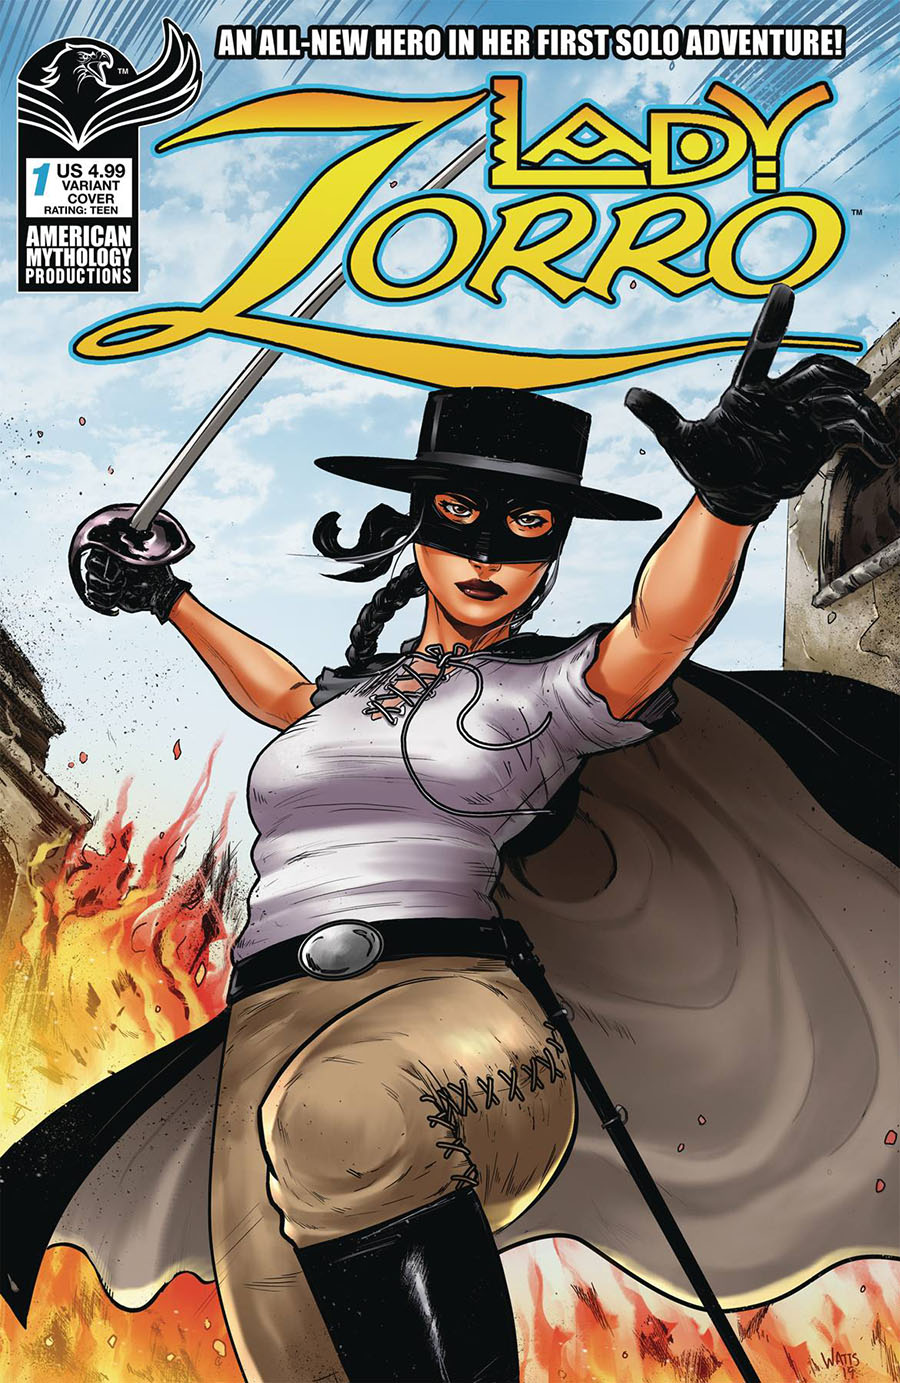 Lady Zorro Vol 2 #1 Cover B Variant Larry Watts Swashbuckling Cover